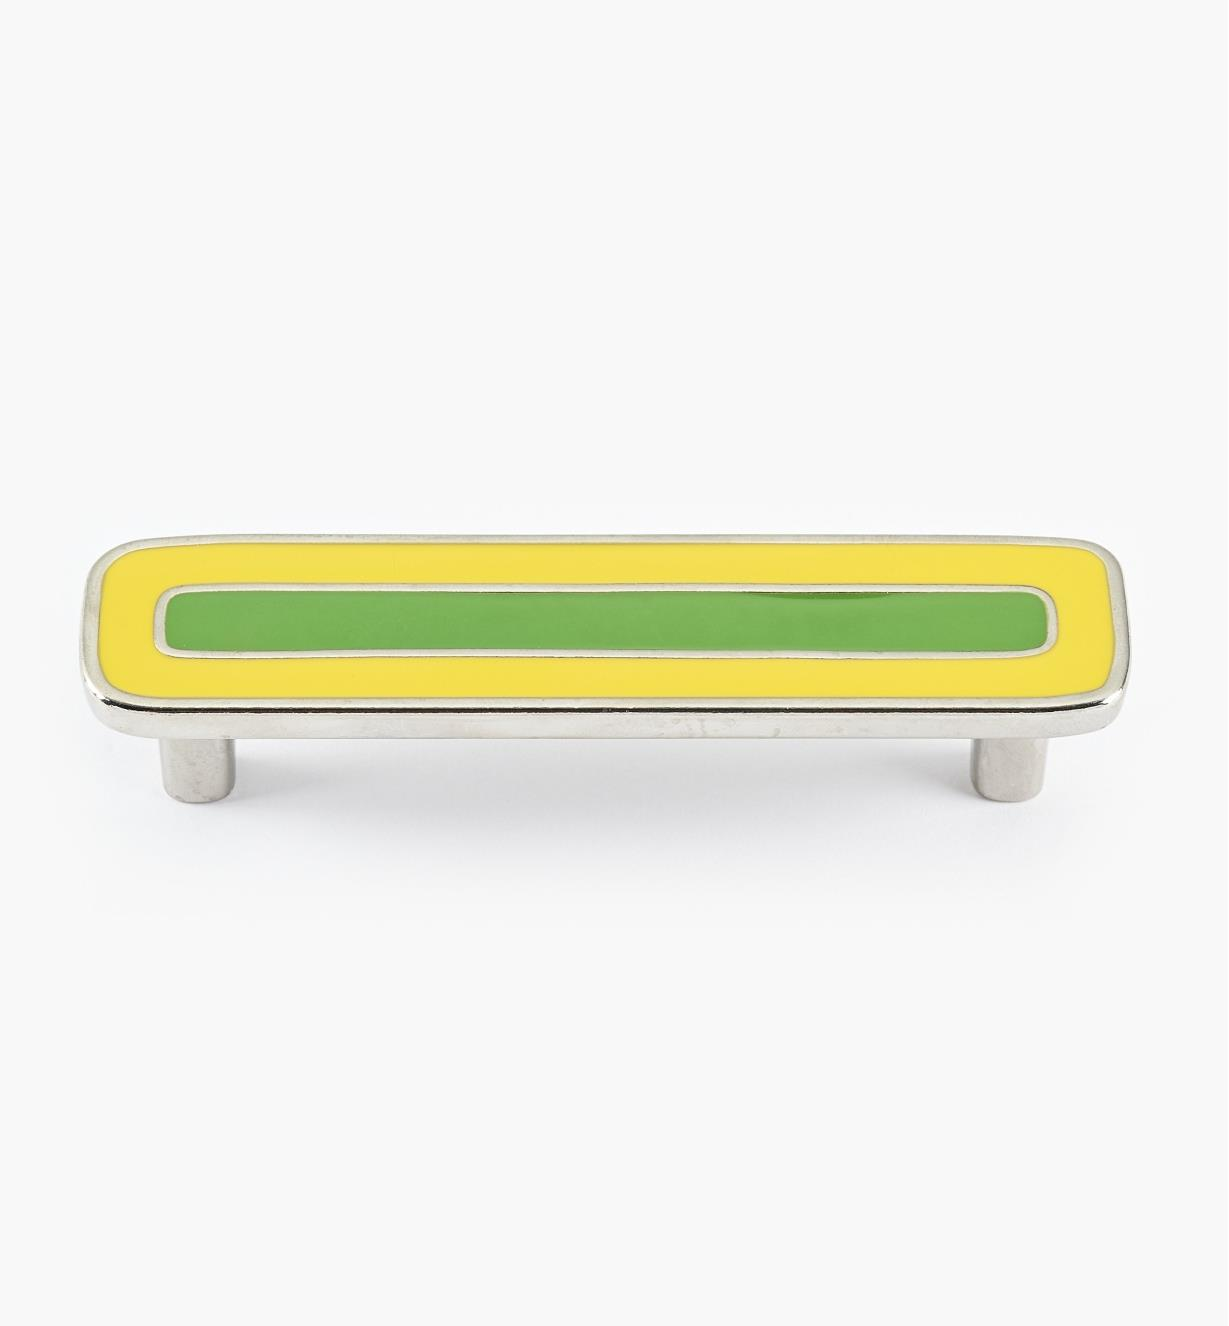 01X4363 - Enamel Infill 96mm x 122mm Large Yellow/Green Handle